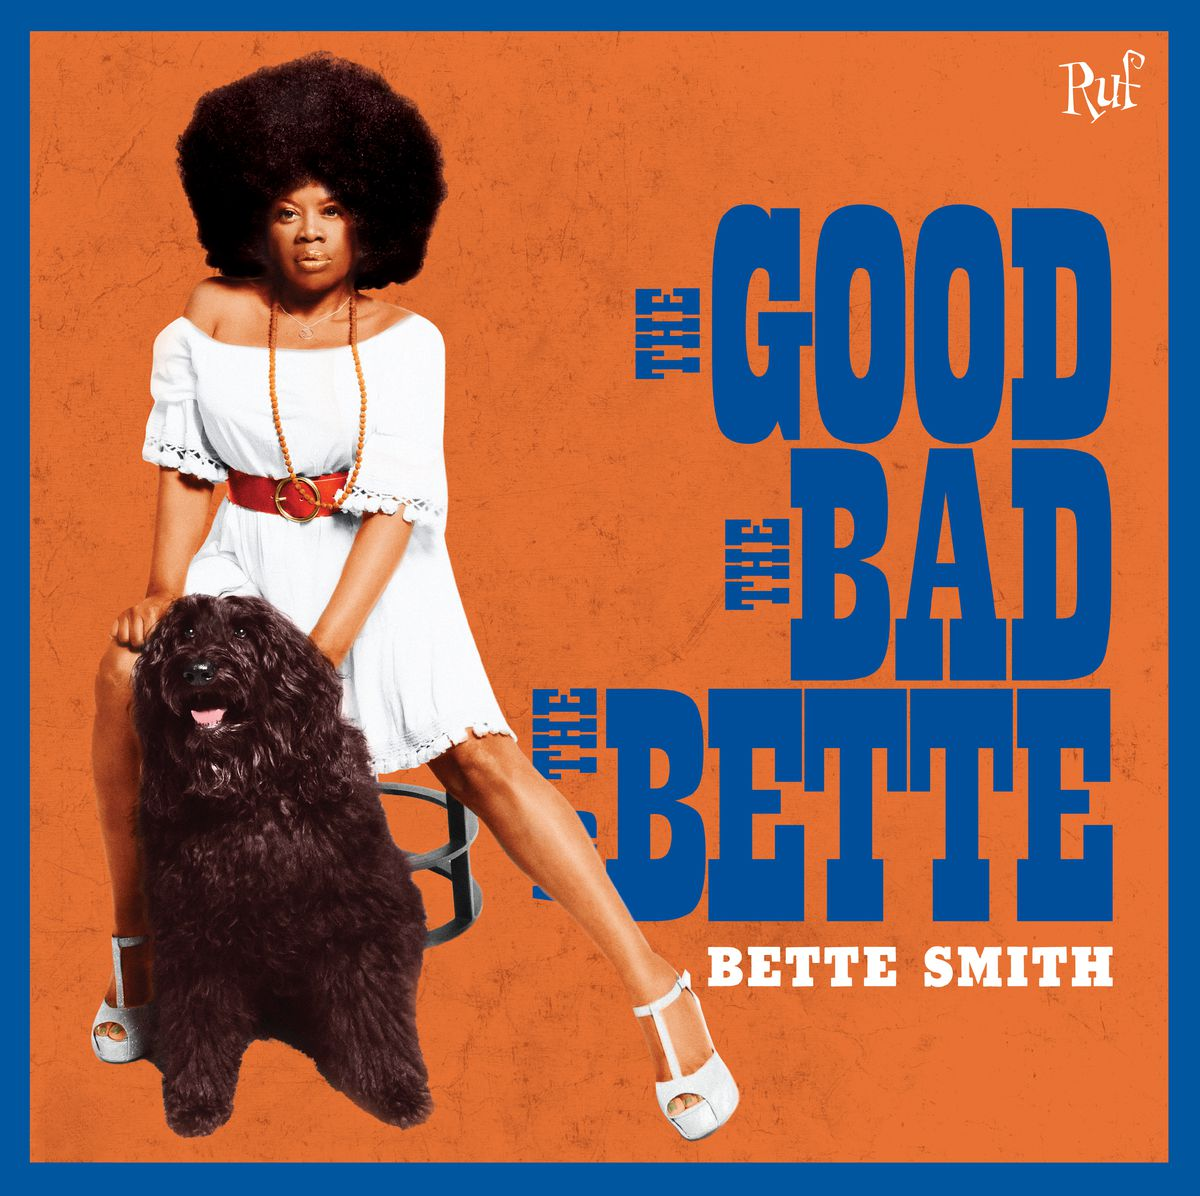 """Bette Smith's album """"The Good, the Bad and the Bette"""" came out last year."""